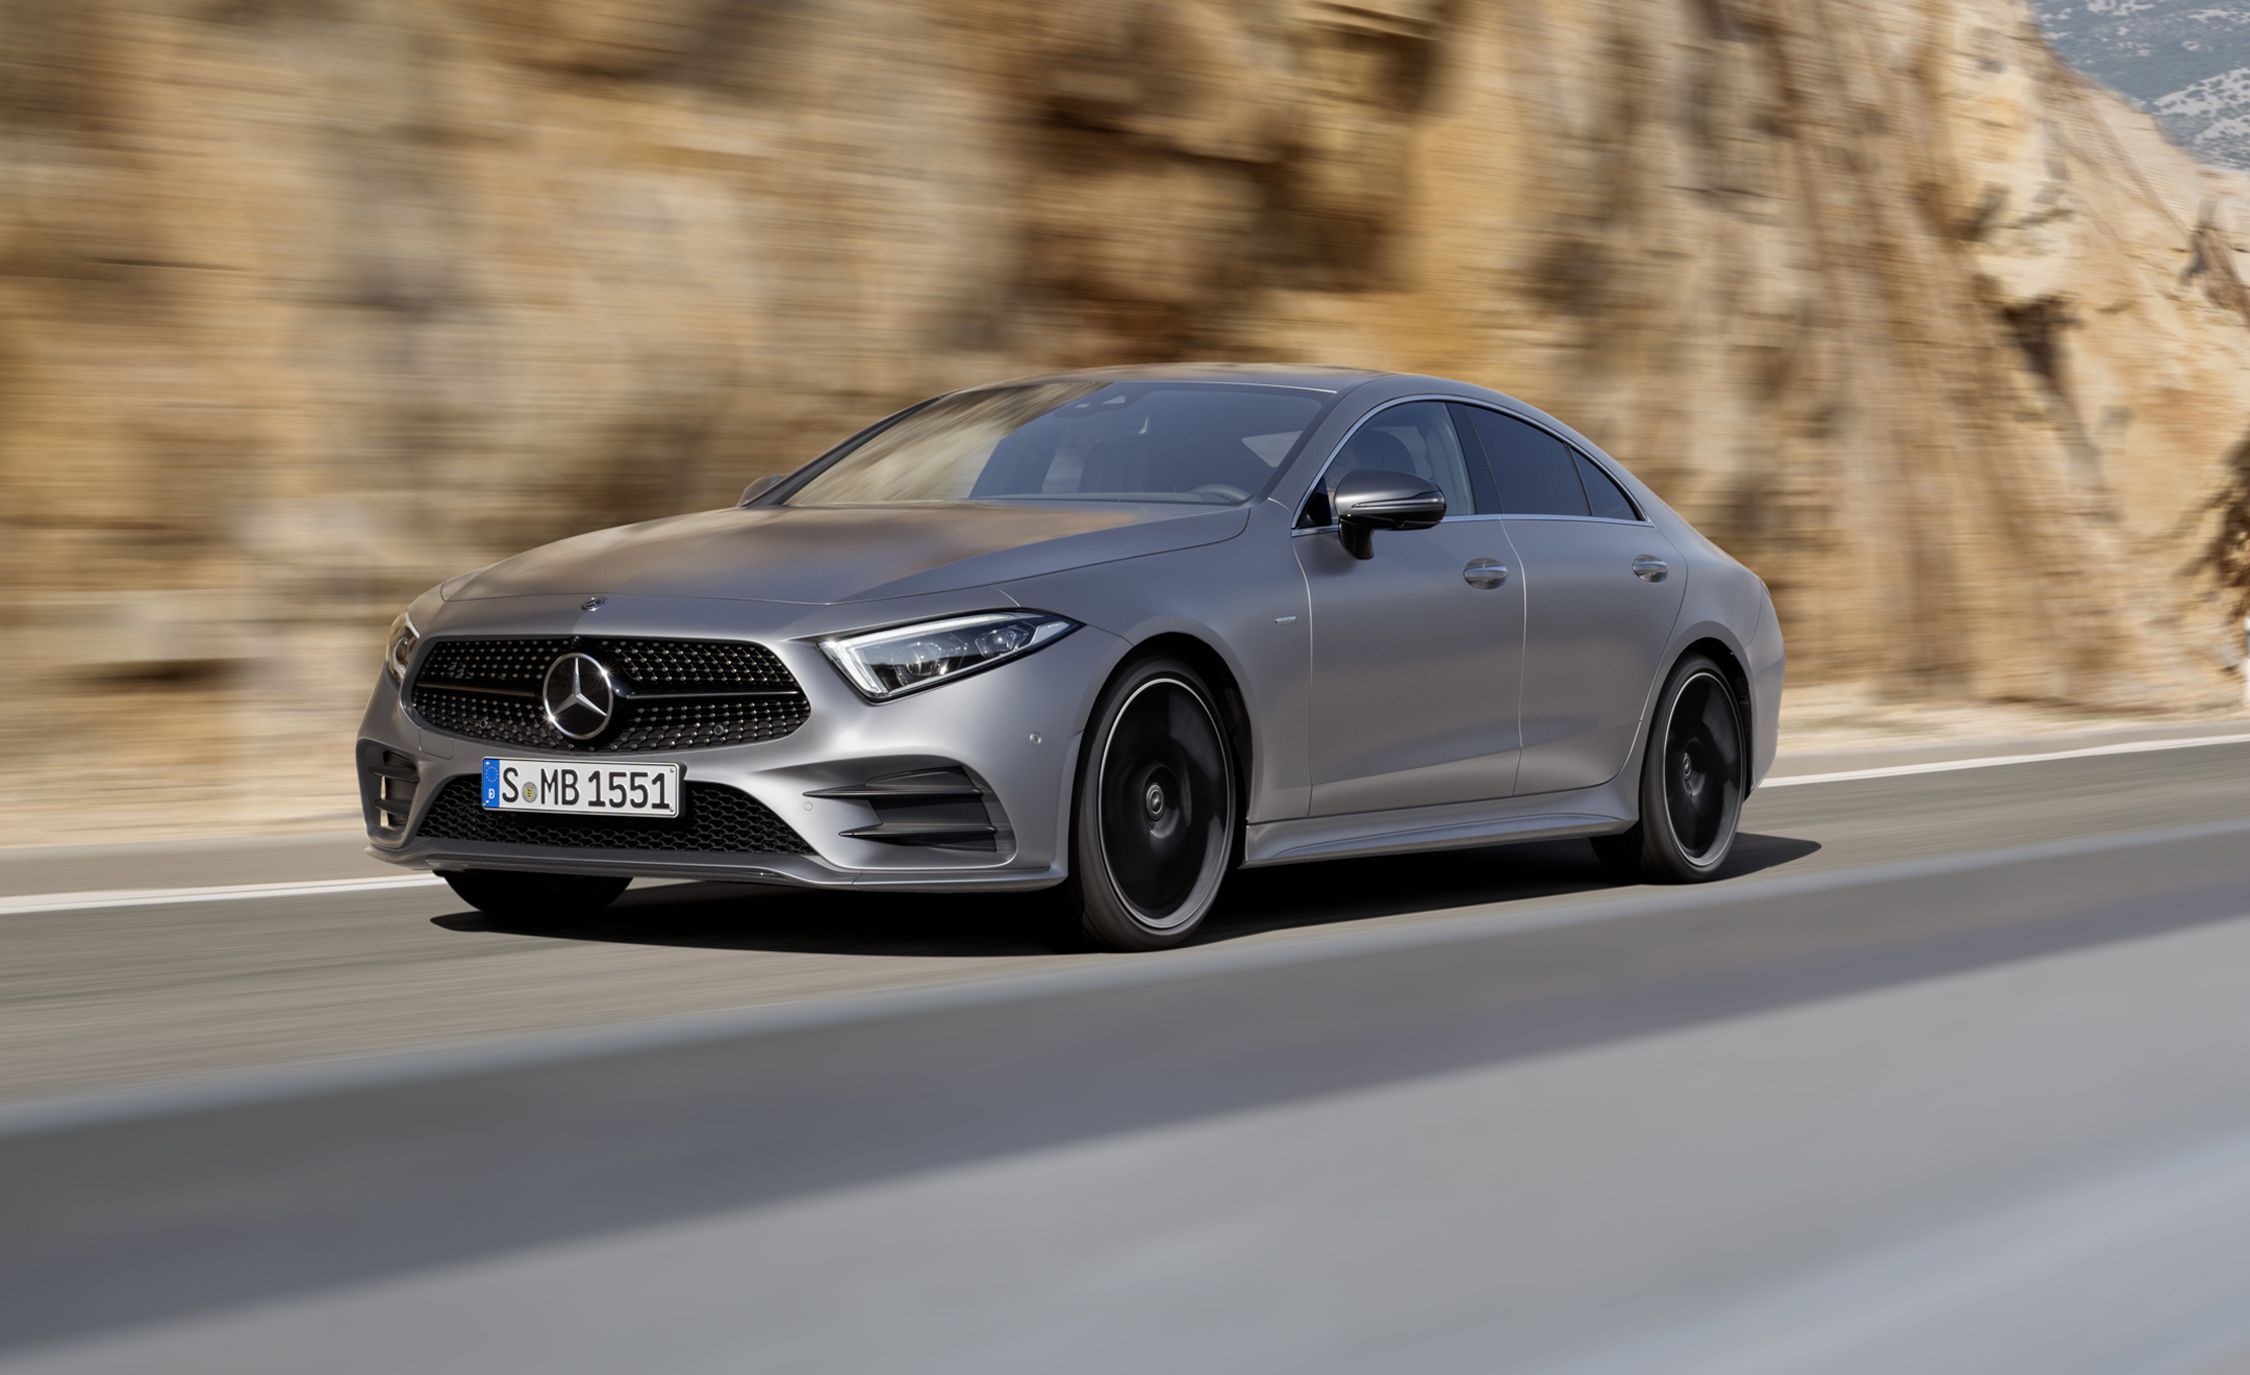 2018 Mb Cls550 >> 2019 Mercedes-Benz CLS-class: Pretty Again, Plus an Inline-Six | News | Car and Driver